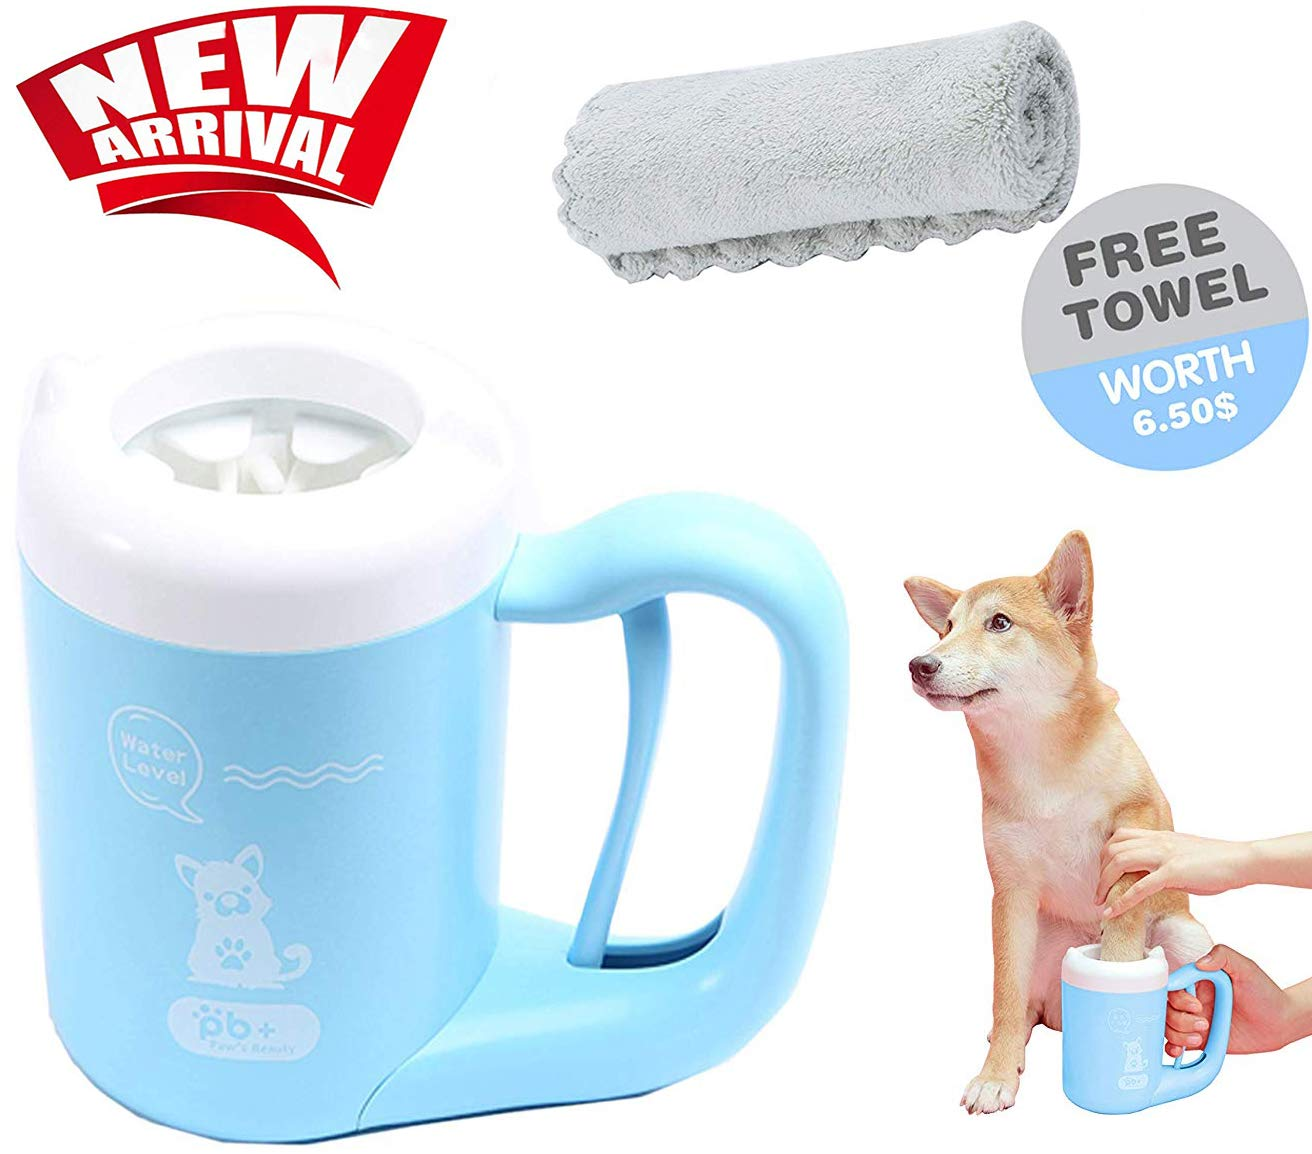 Portable Dog Paw Cleaner Cup - Wet Paw Cleaner Press Rotation, Free Towel